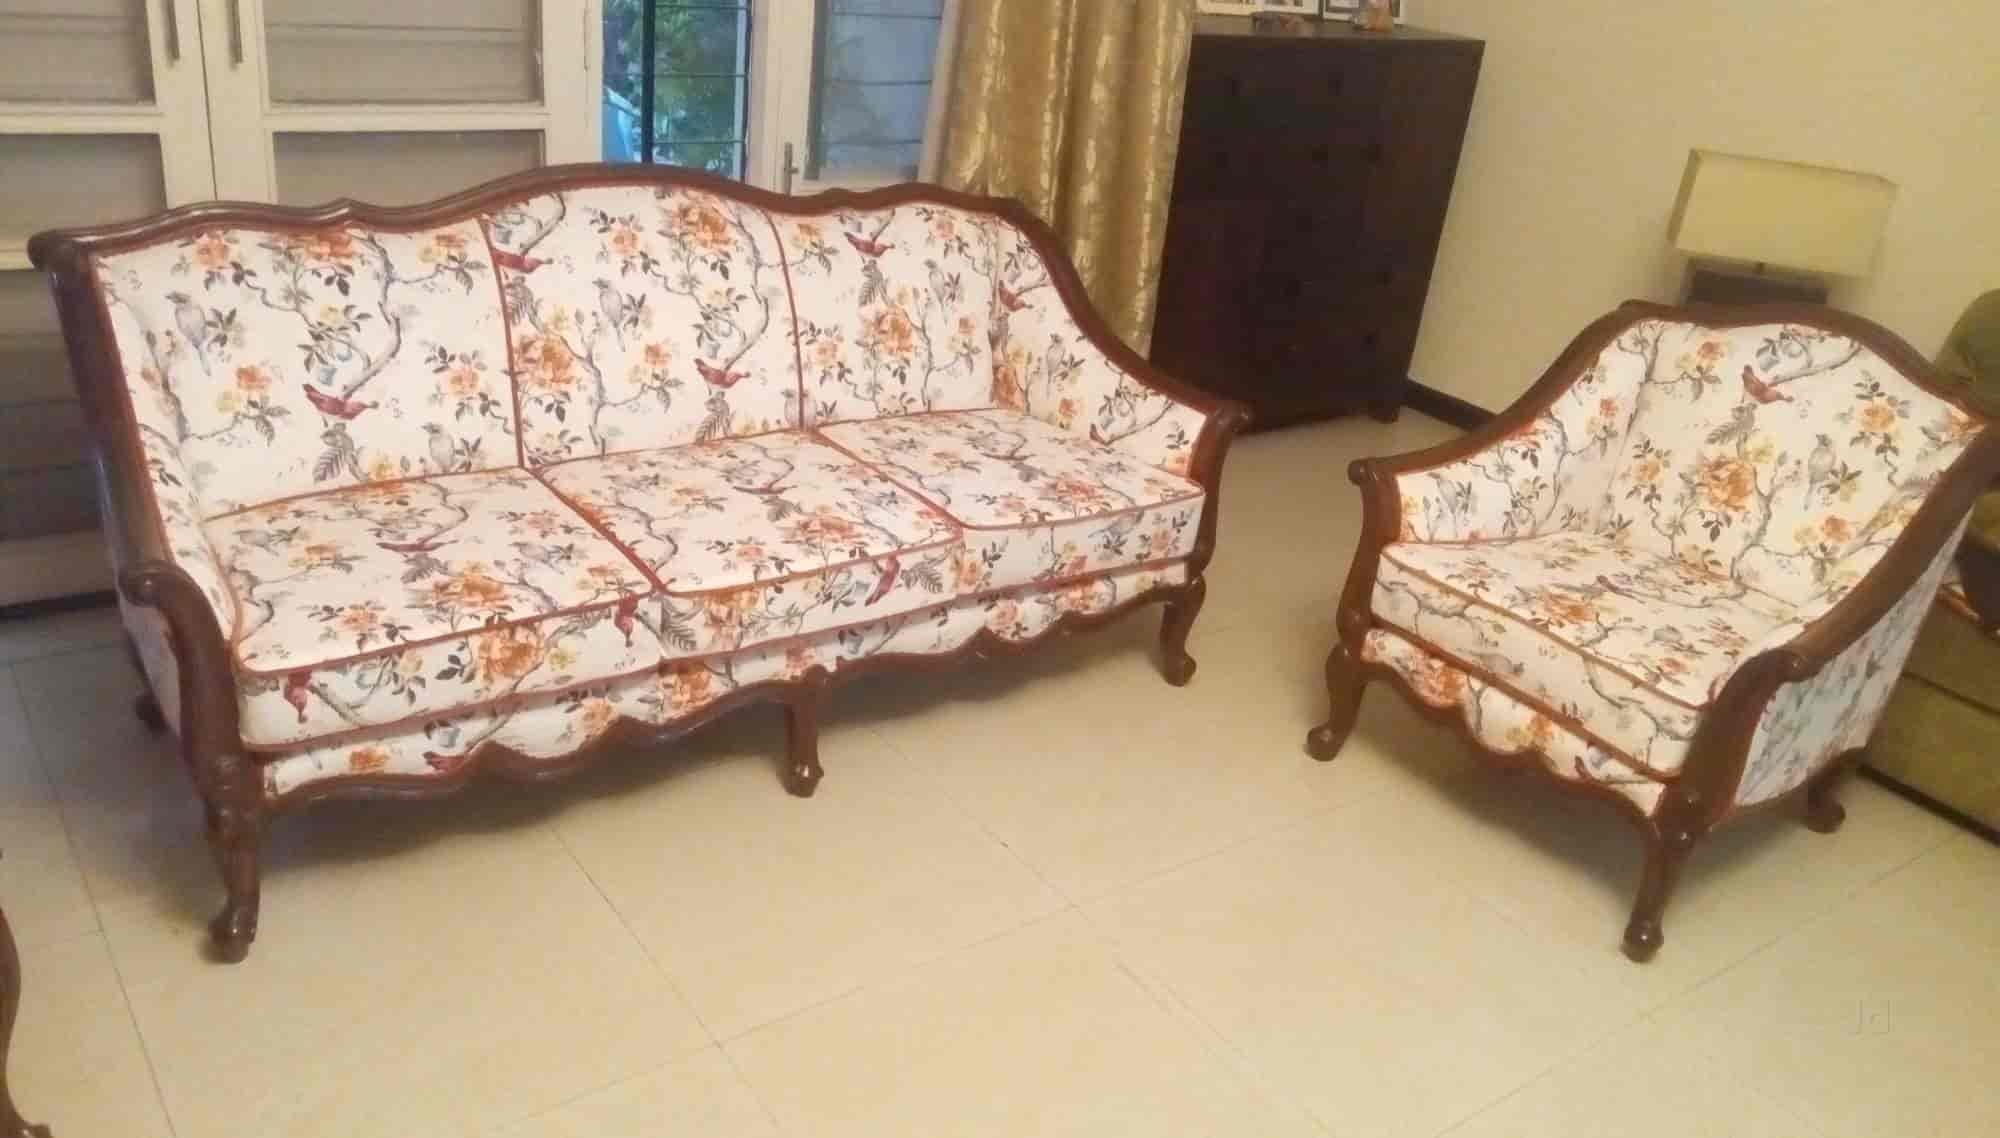 sofa repair sikanderpur gurgaon bed and set design in brokeasshome